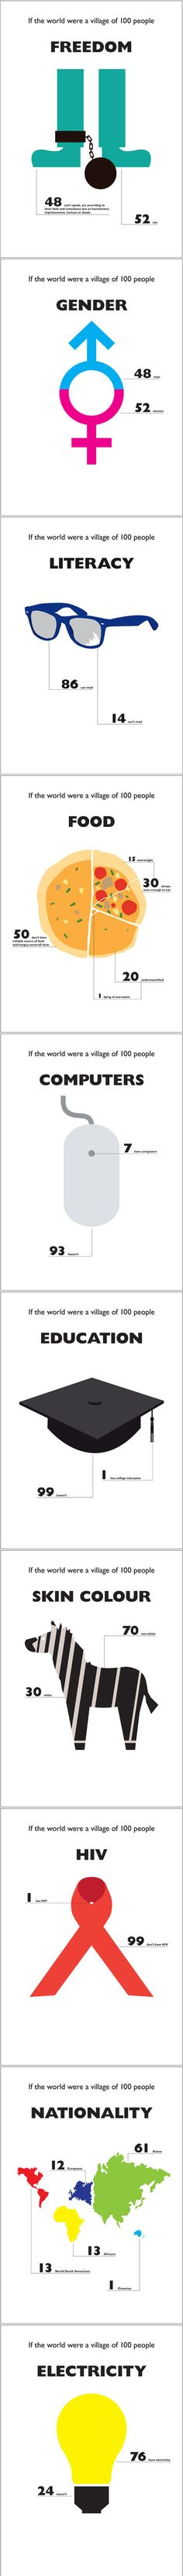 If the world were a village of 100 people ...